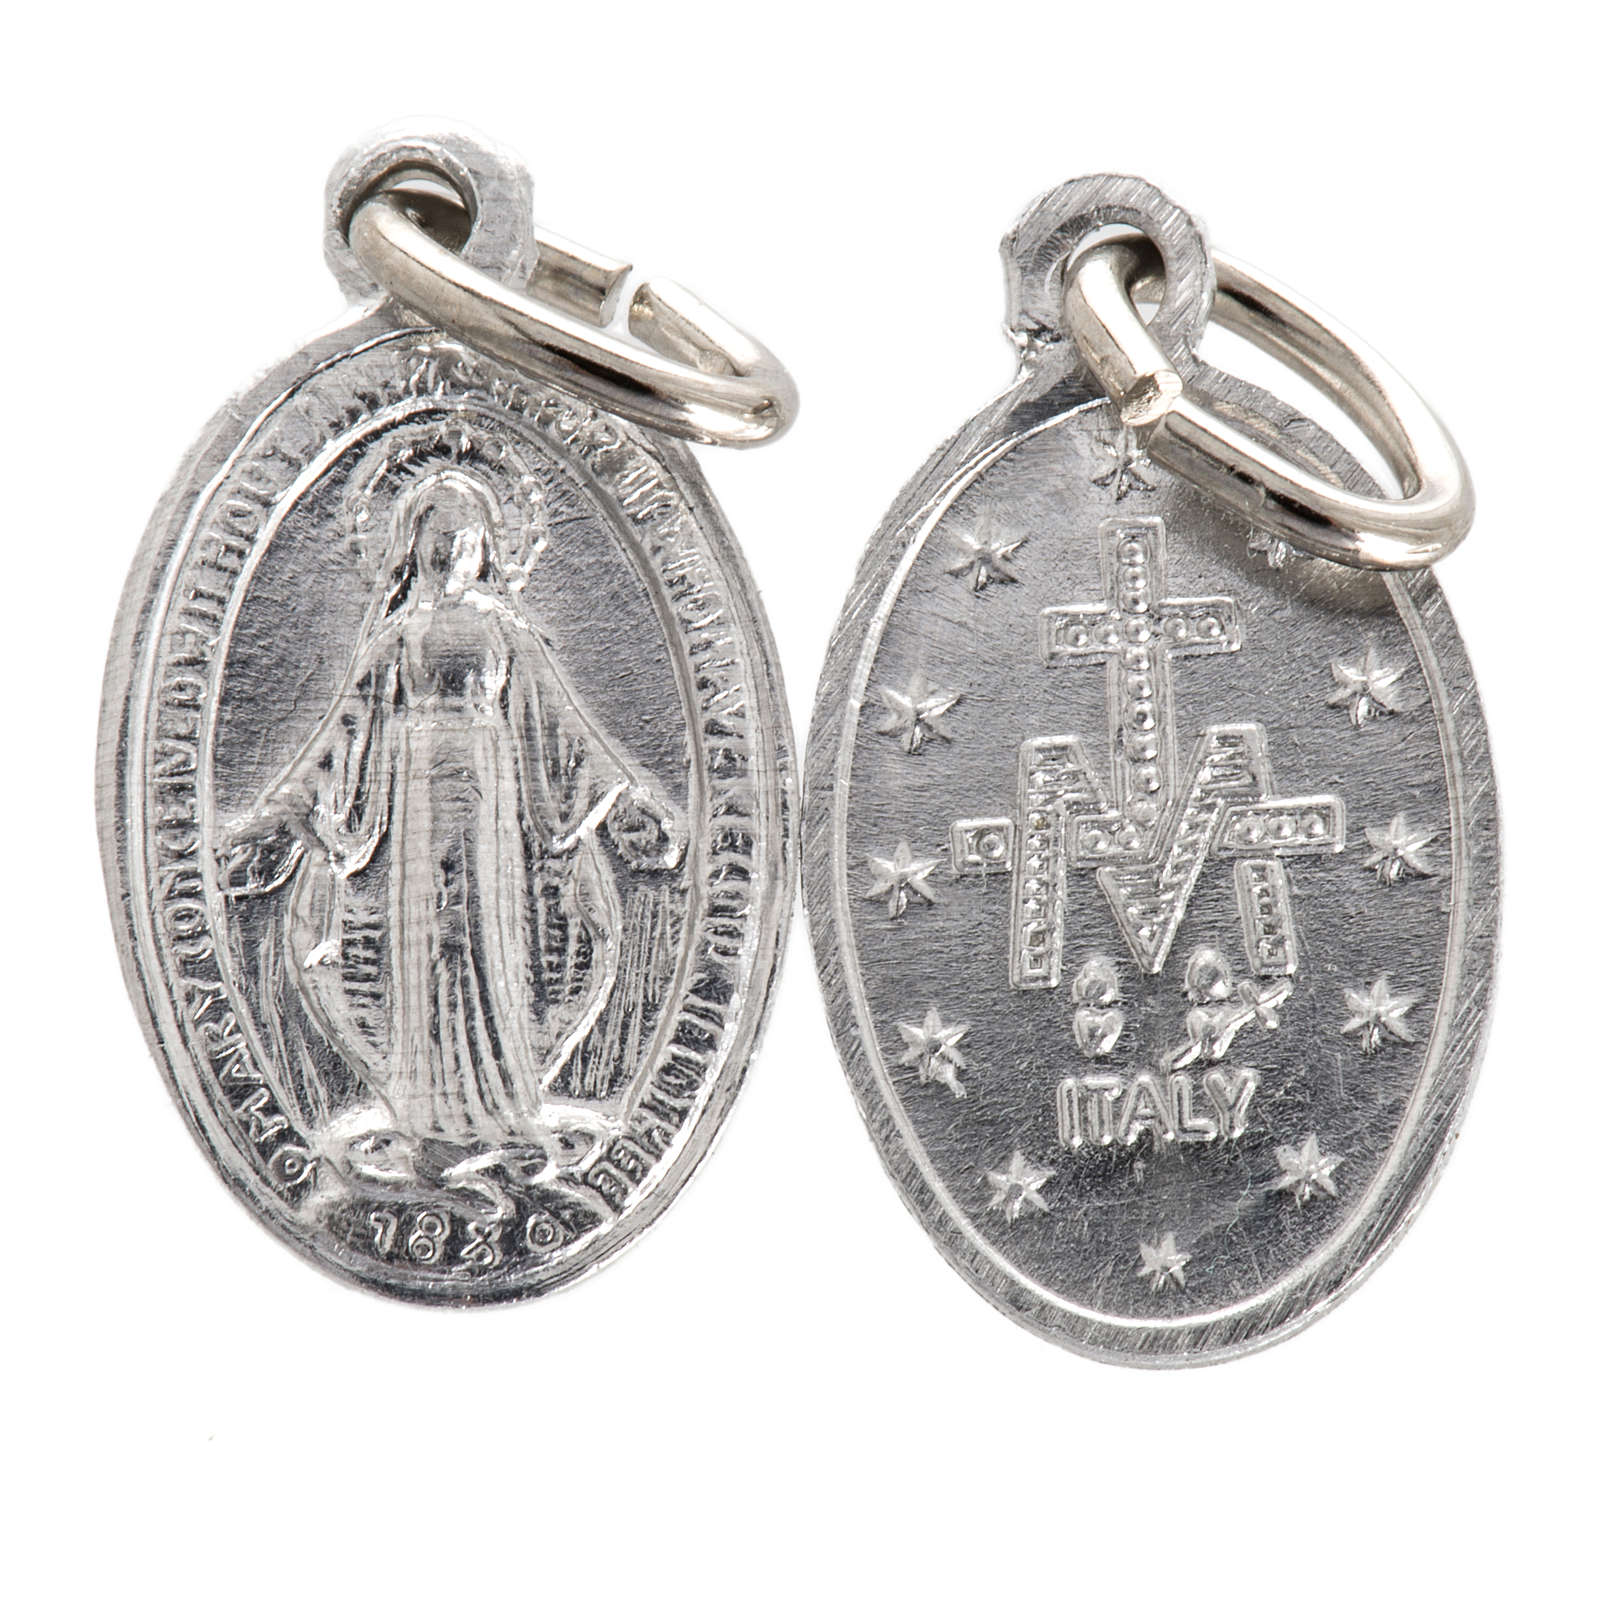 Miraculous Madonna, medal in silver steel 10mm 4